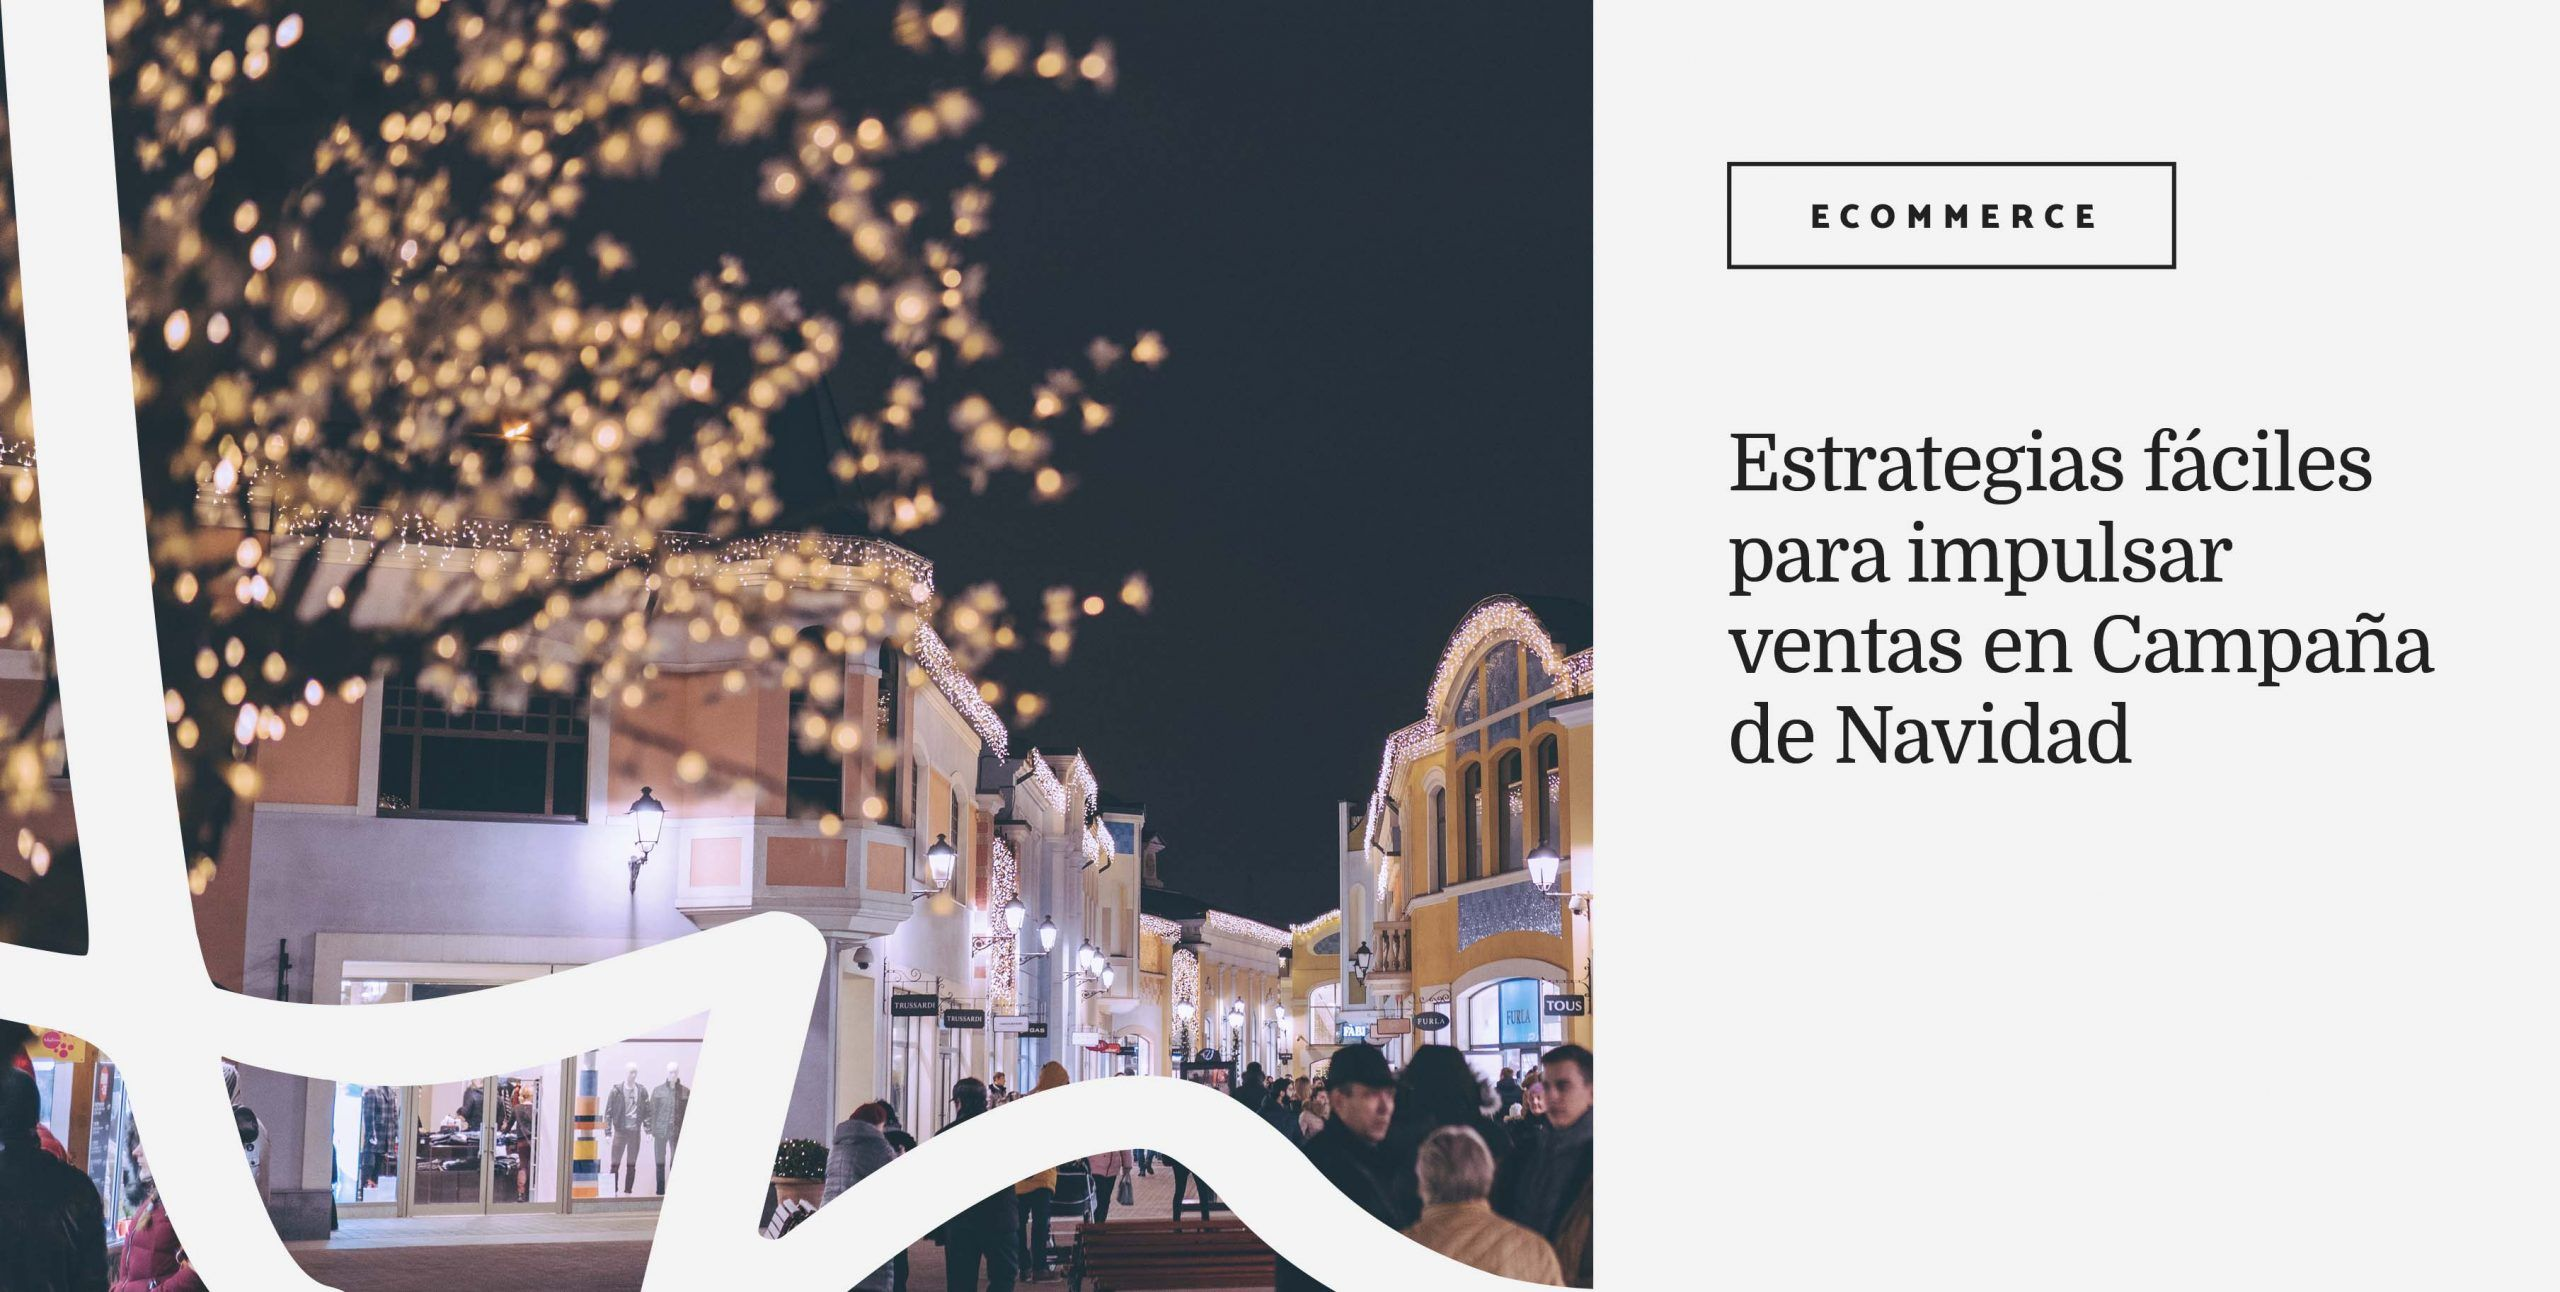 aumentar-ventas-en-ecommerce-navidad-ana-diaz-del-rio-consultora-marketing-de-moda-scaled.jpg